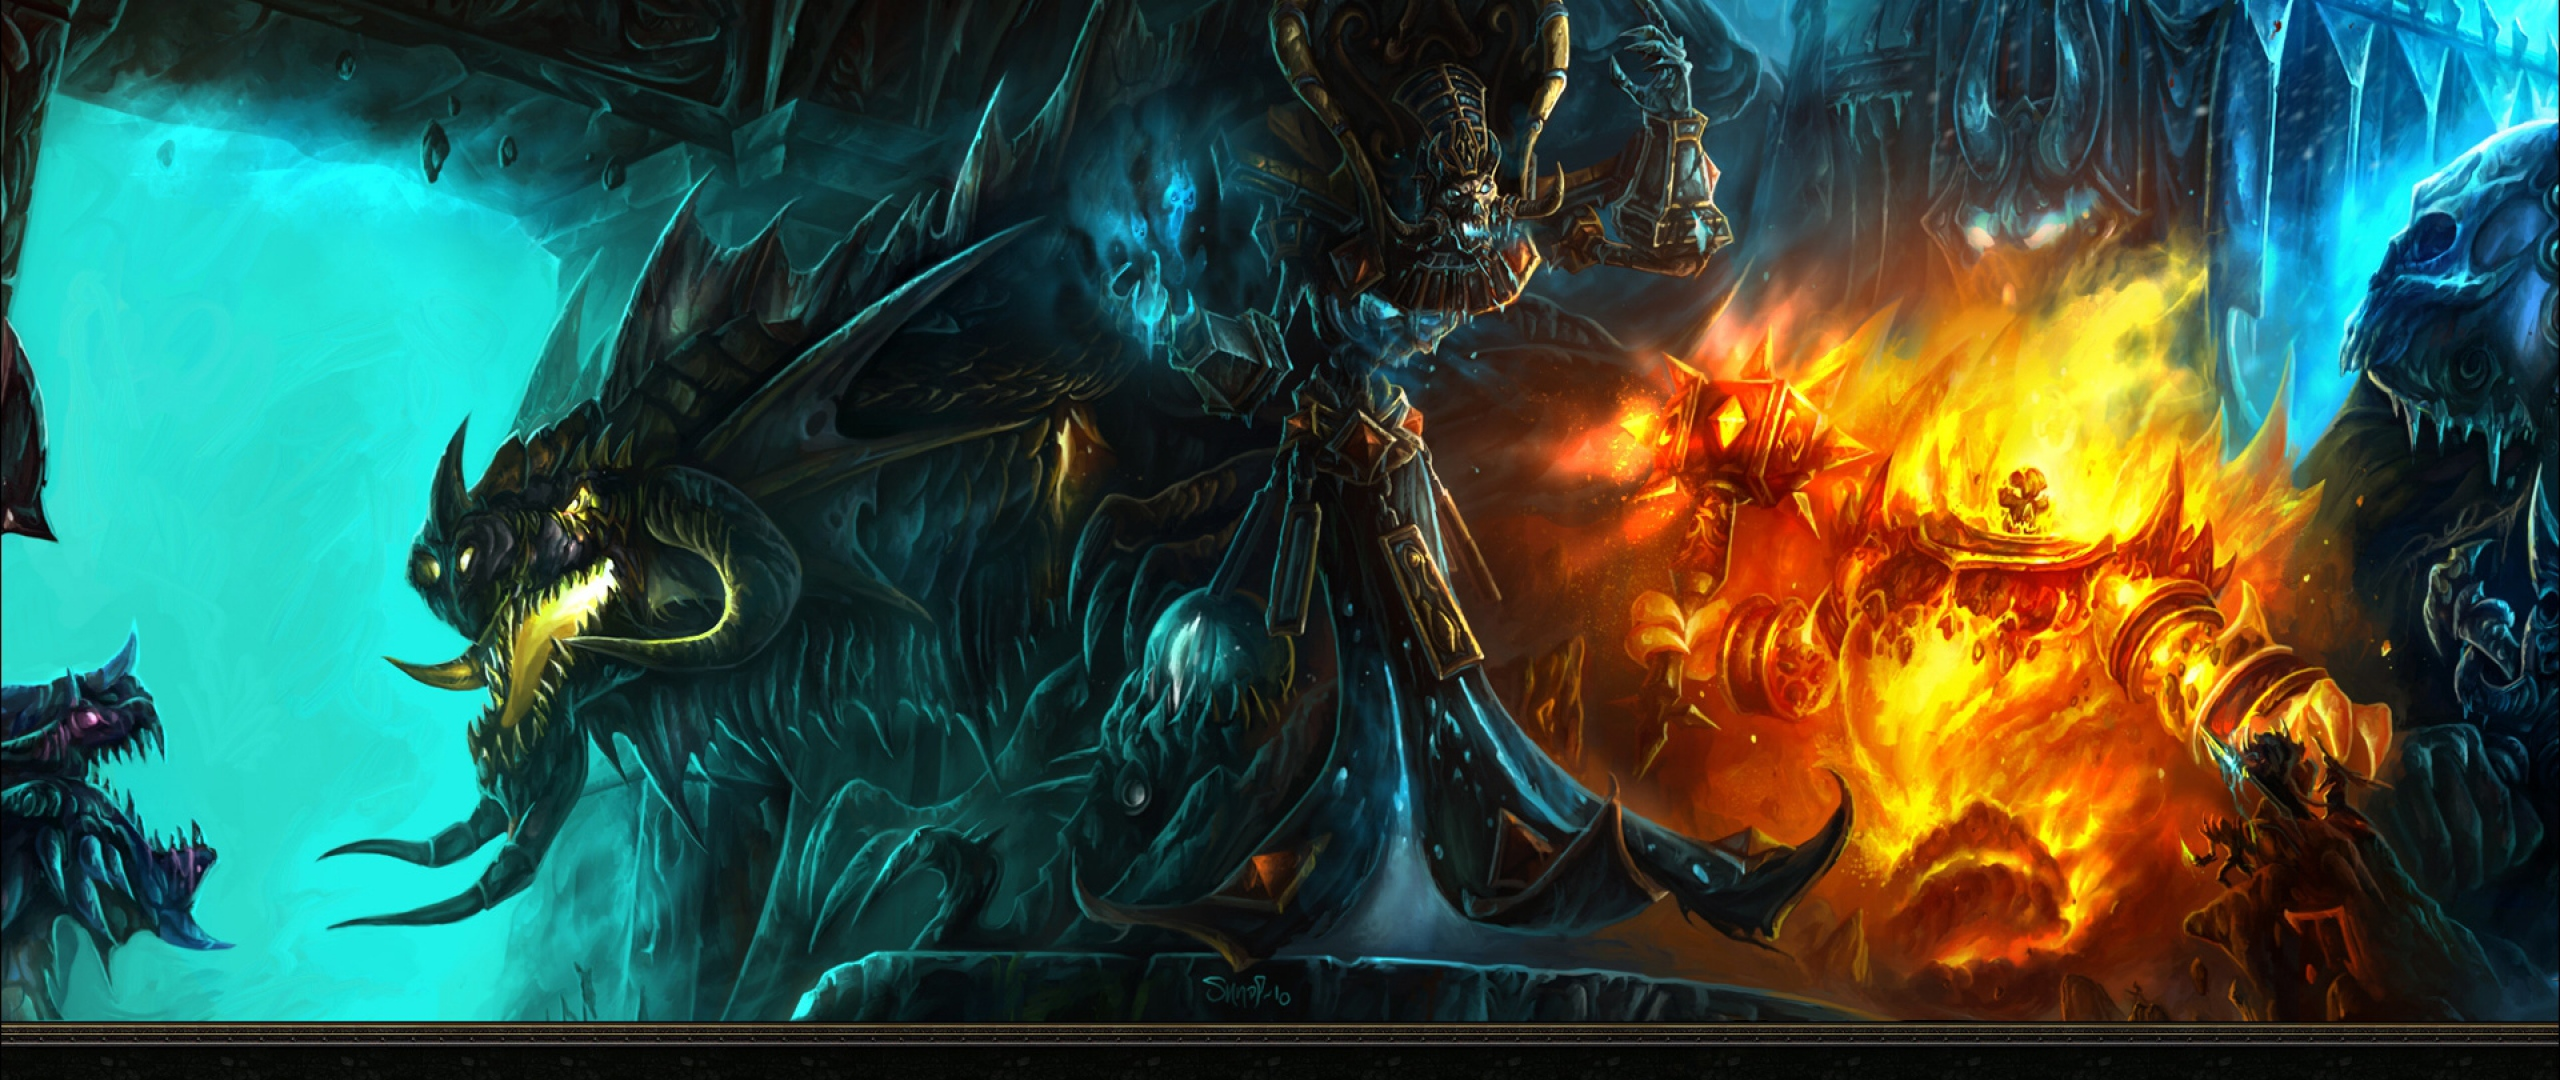 2560x1080 Wallpaper world of warcraft monsters characters game 2560x1080